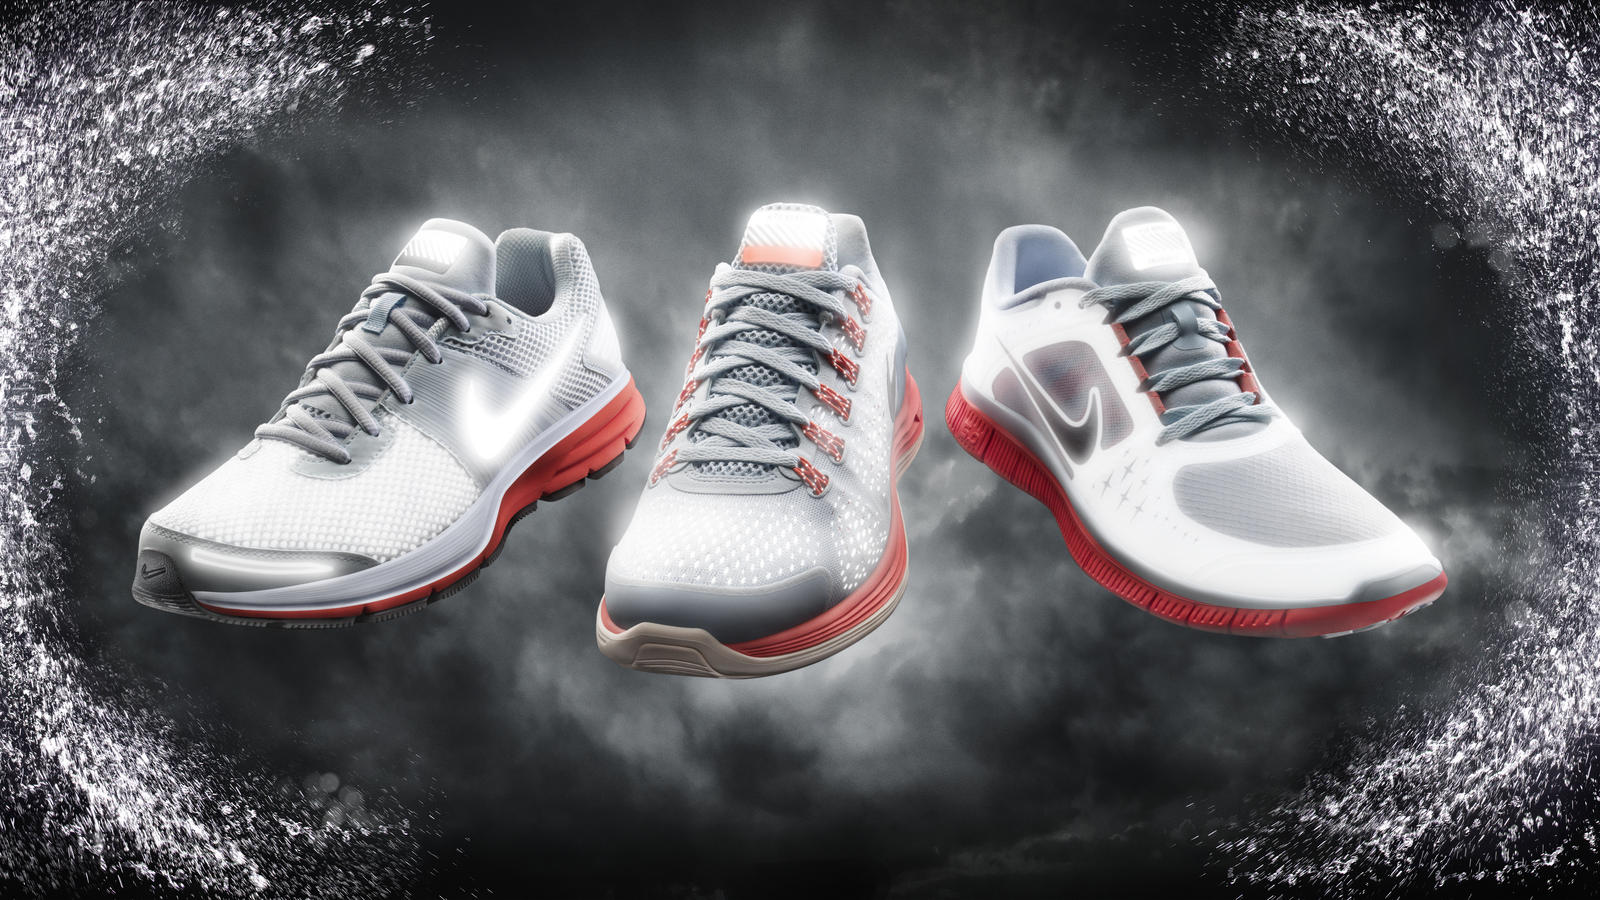 Nike Shield Footwear Collection Takes